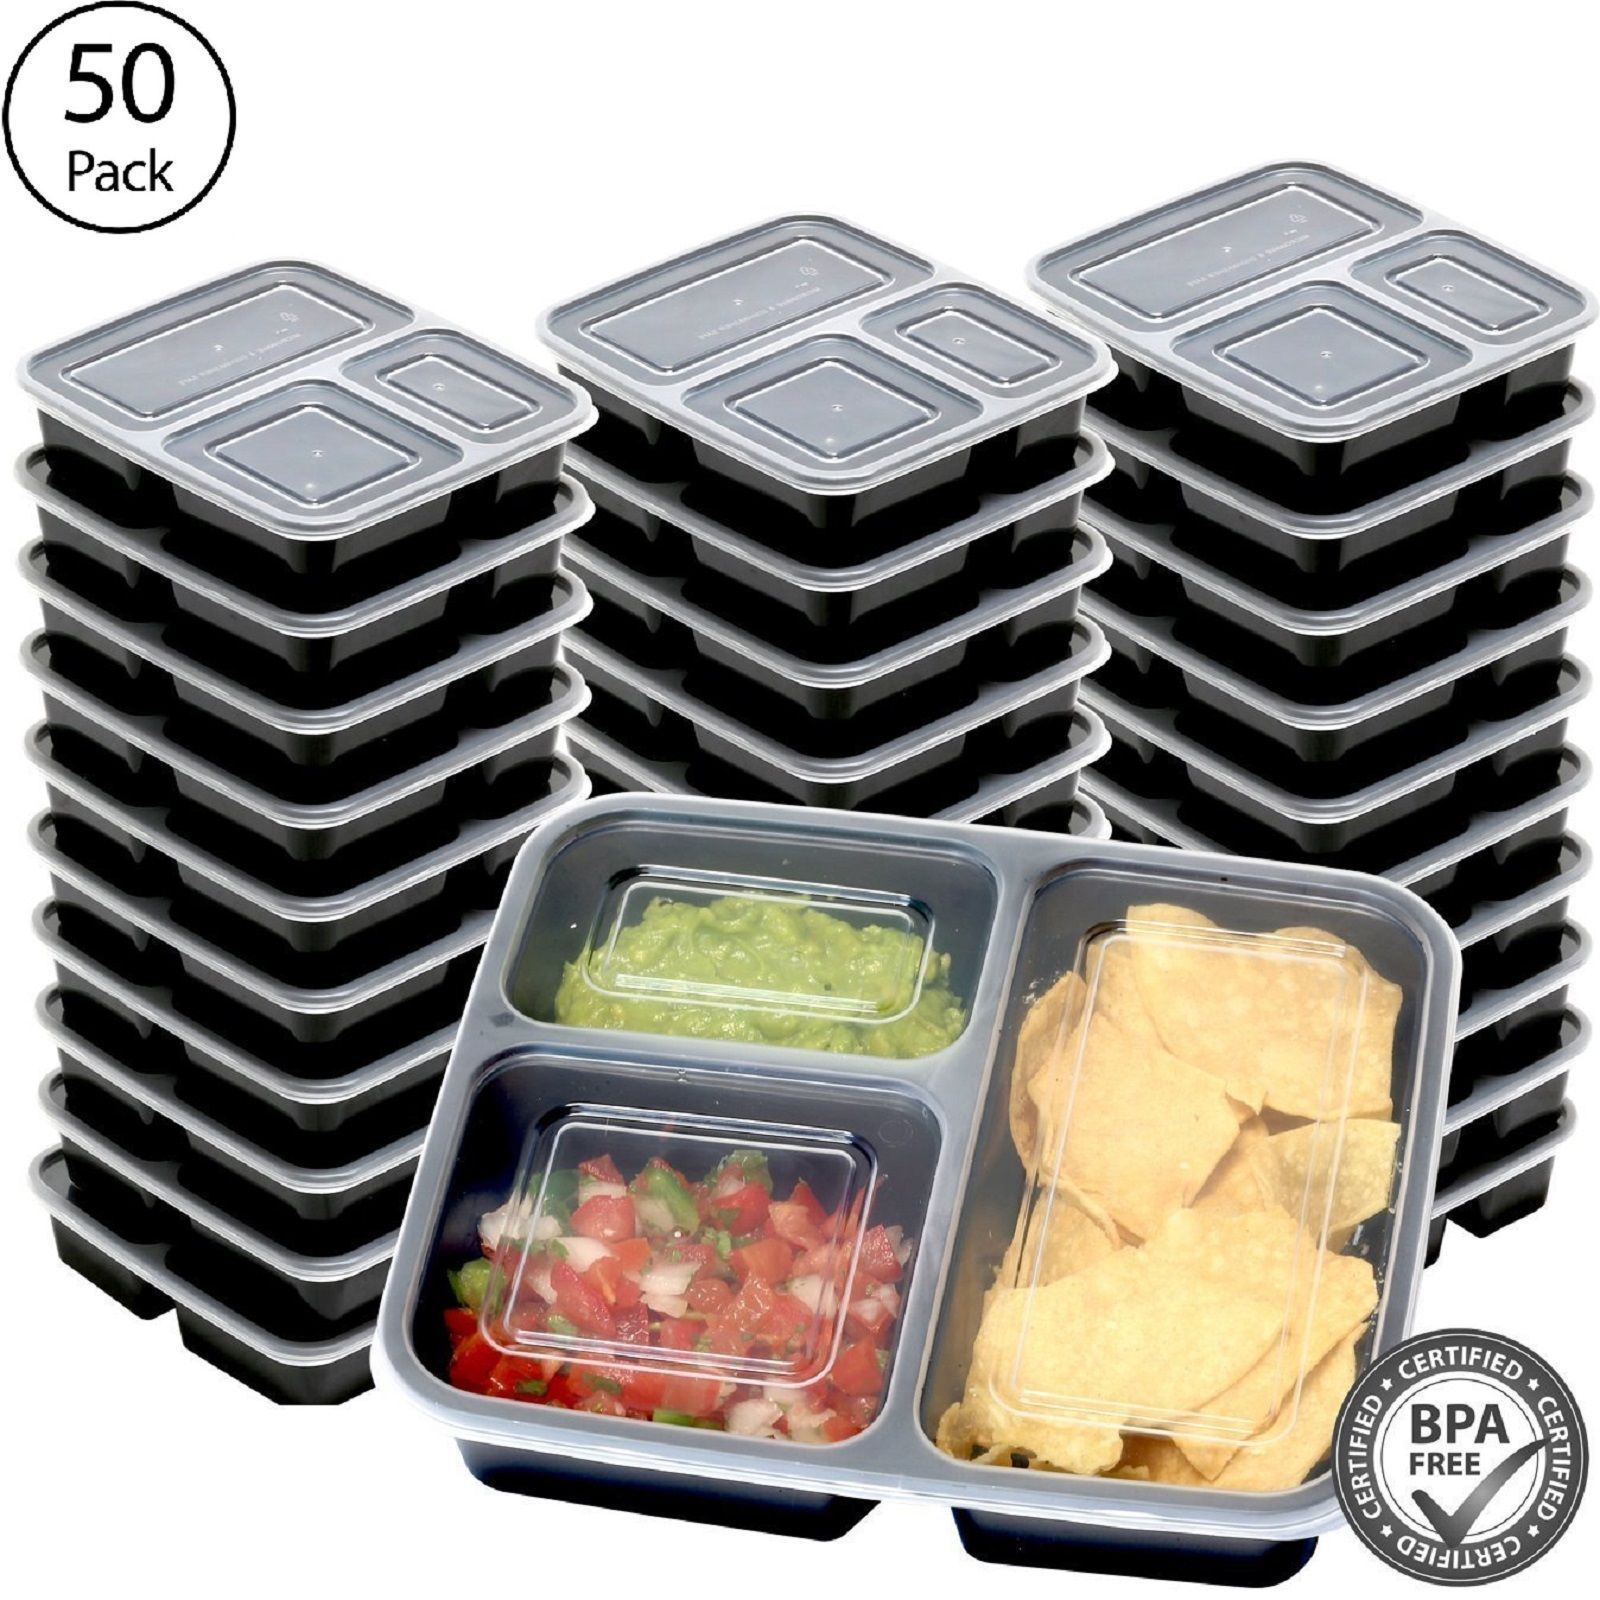 50 Meal Prep Containers Food Storage 3 Compartment Plastic Reusable Microwavable 1